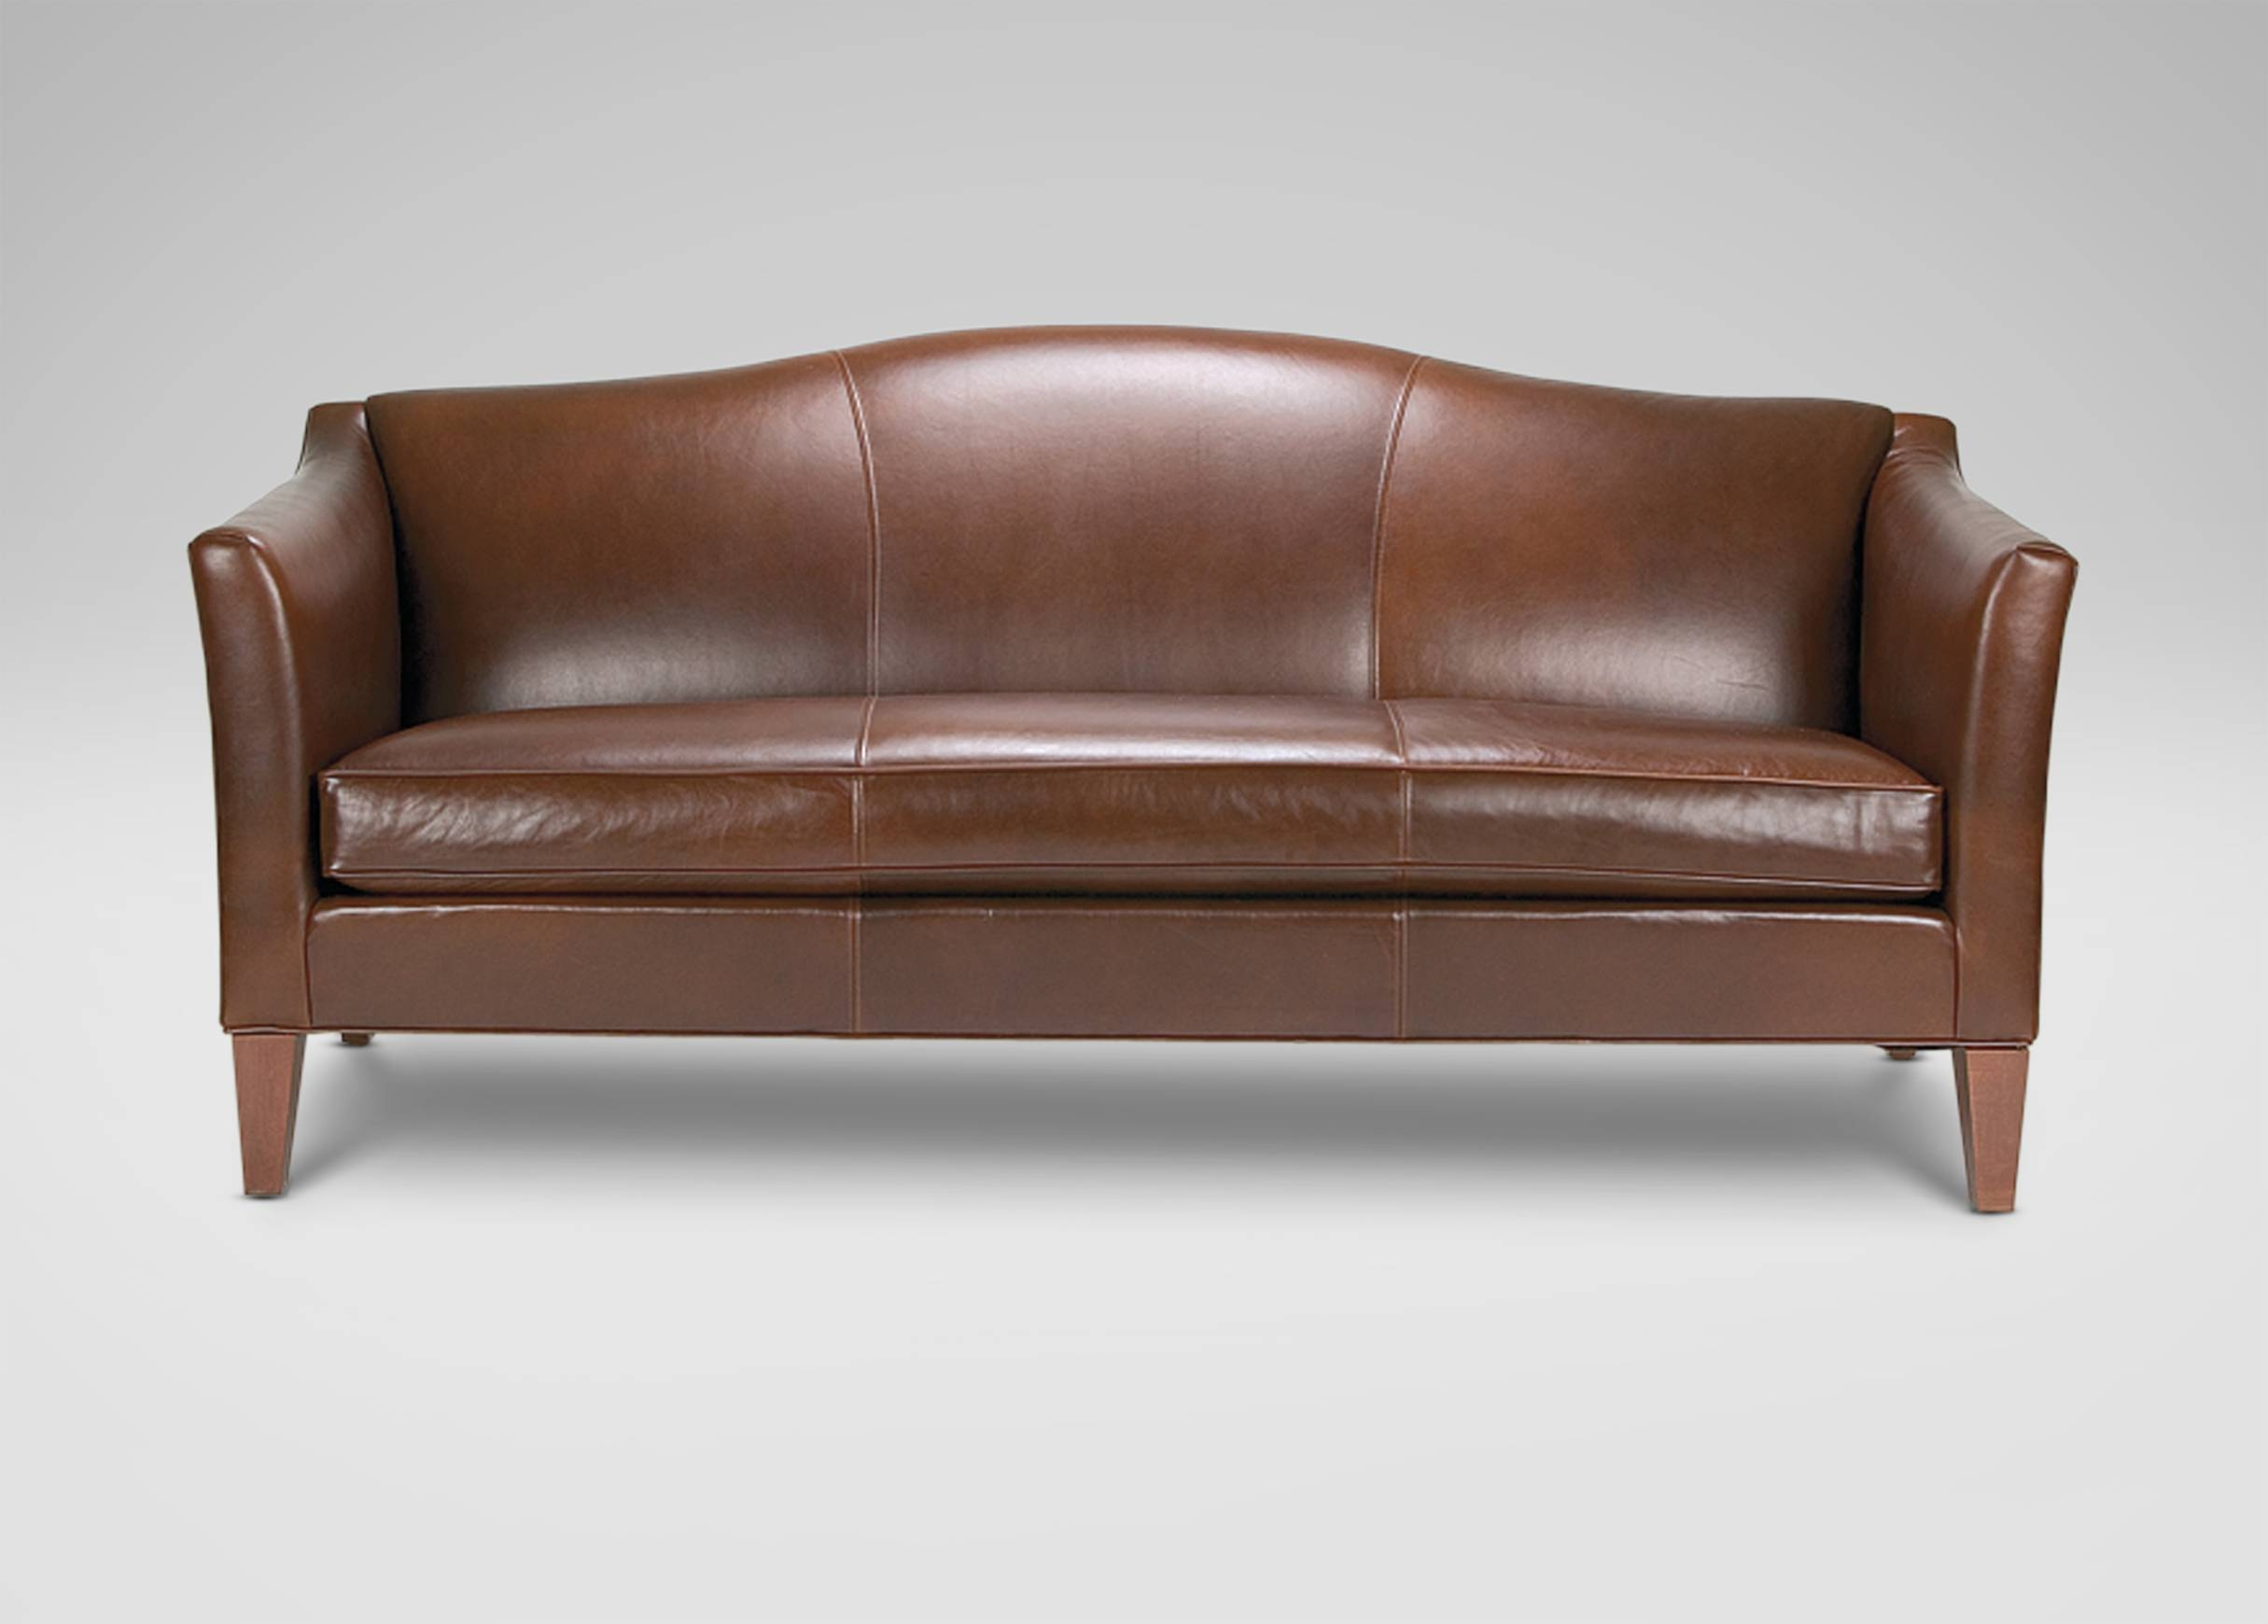 Hartwell Bench-Cushion Leather Sofa - Ethan Allen | Sitegenesis within Bench Cushion Sofas (Image 6 of 15)